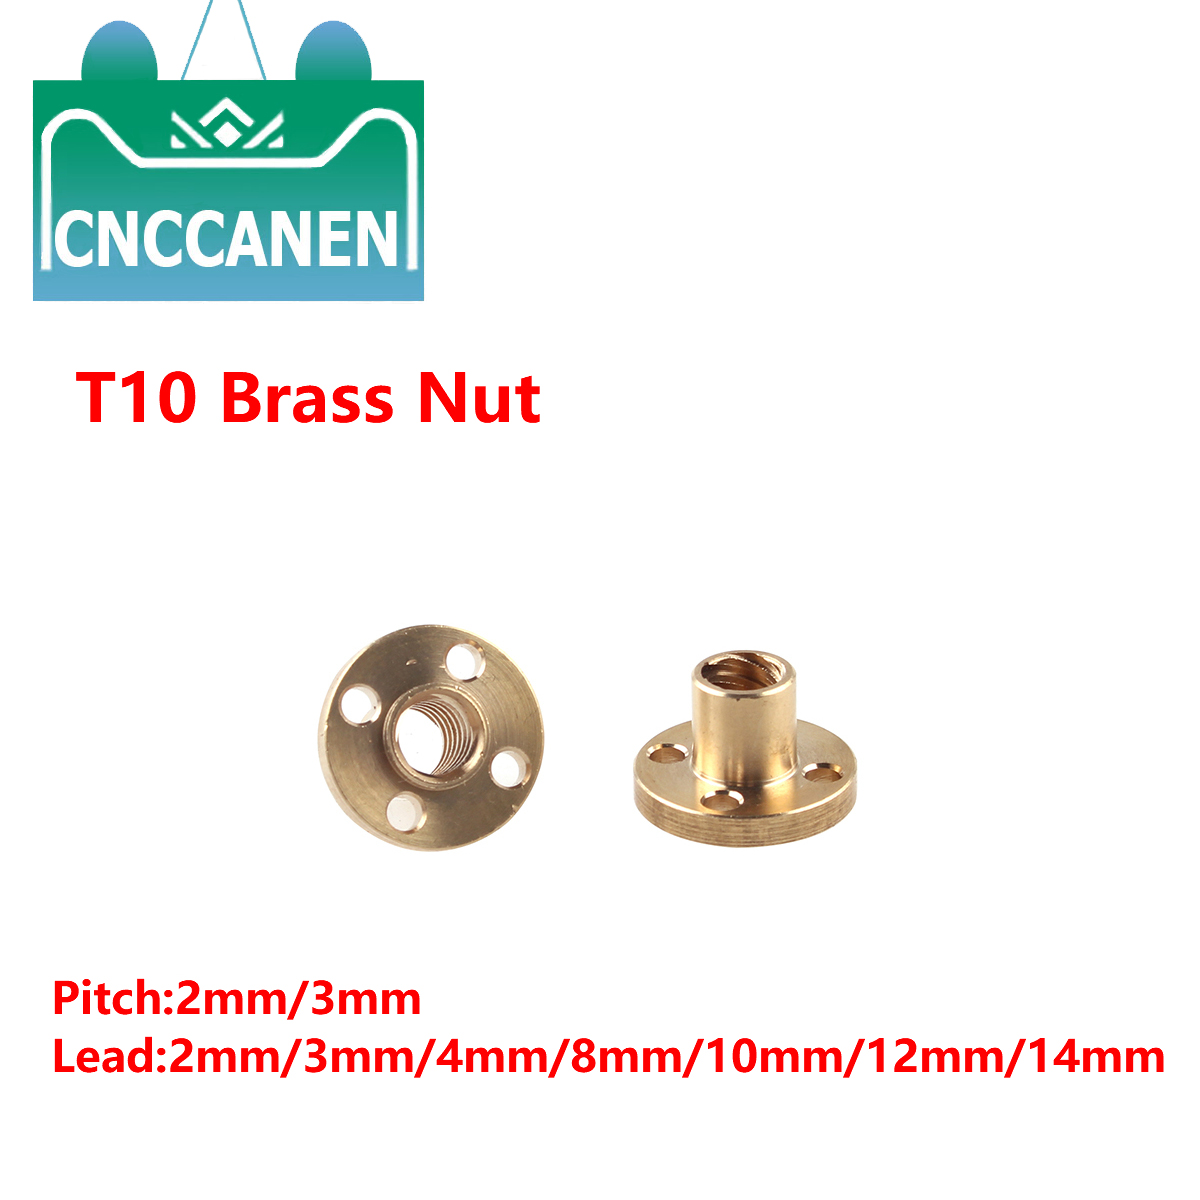 T10 Leadscrew Nut Pitch2mm 3mm Lead 2mm/3mm/4mm/8mm/10mm/12mm Brass Lead Screw Nut For CNC Parts 3D Printer Accessories